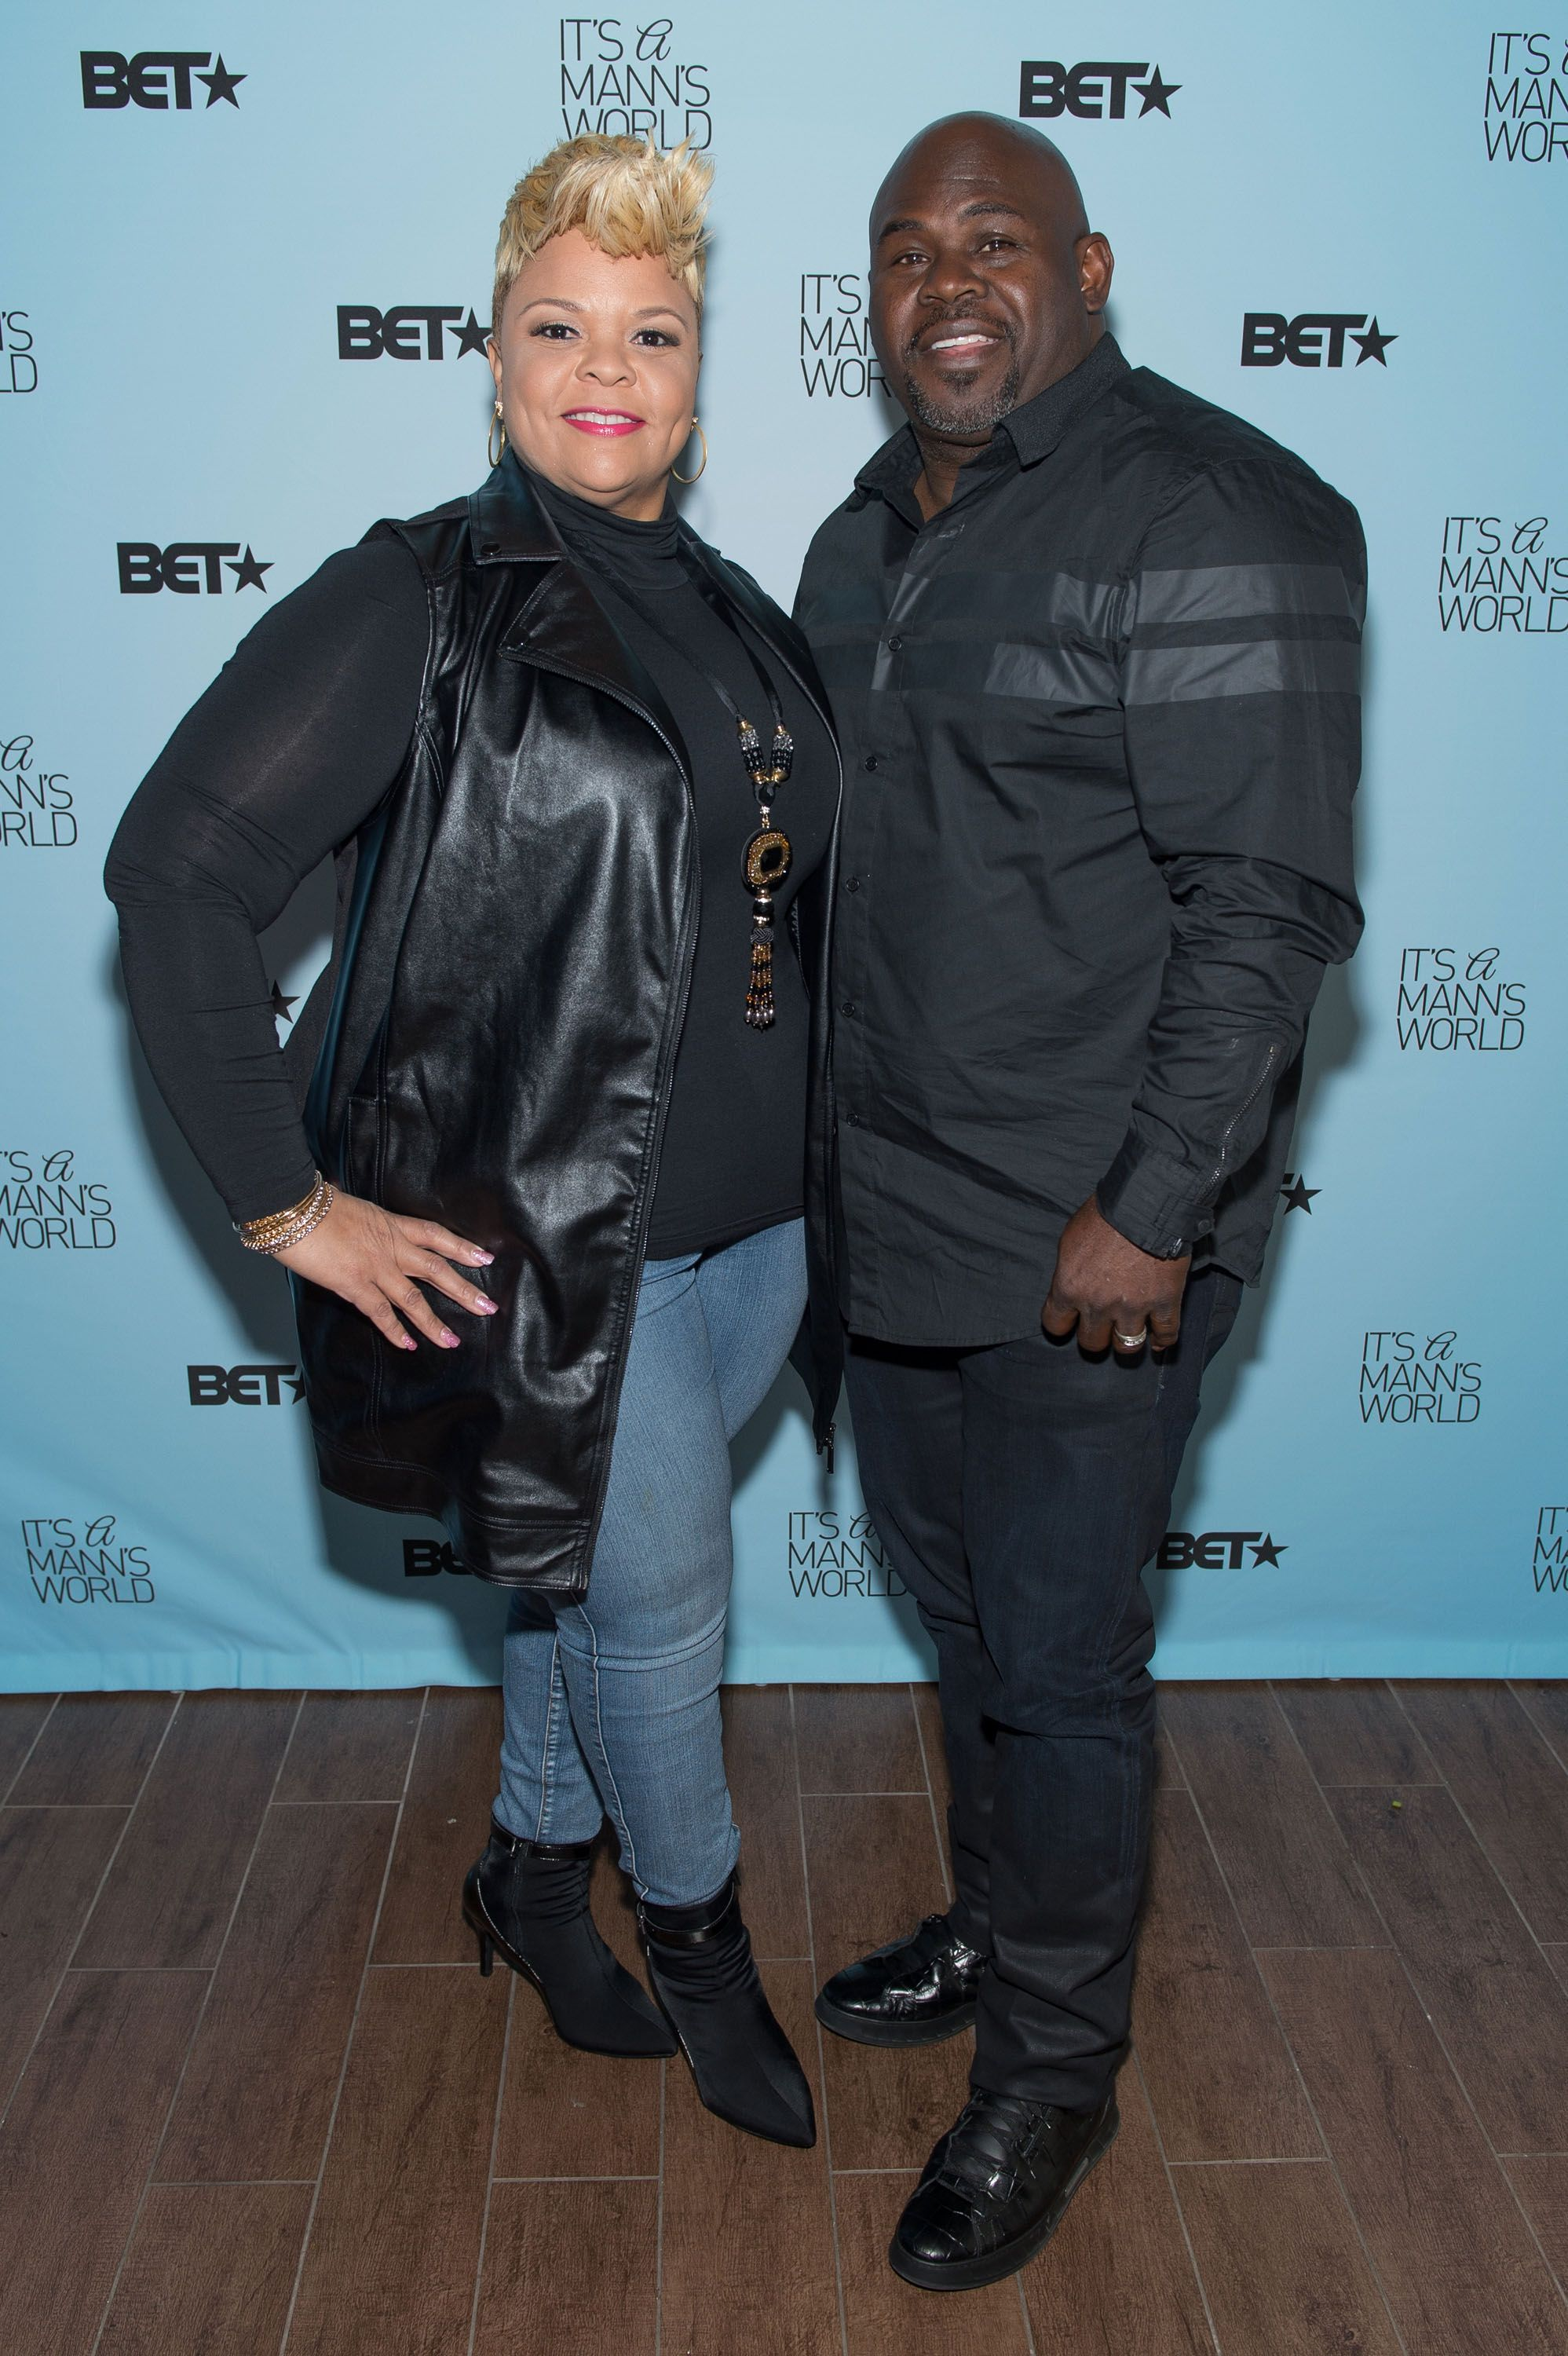 Tamela Mann and actor David Mann at the 'It's a Mann's World' season two luncheon screening at TRACE at the W on February 16, 2016 in Atlanta, Georgia | Photo: Getty Images